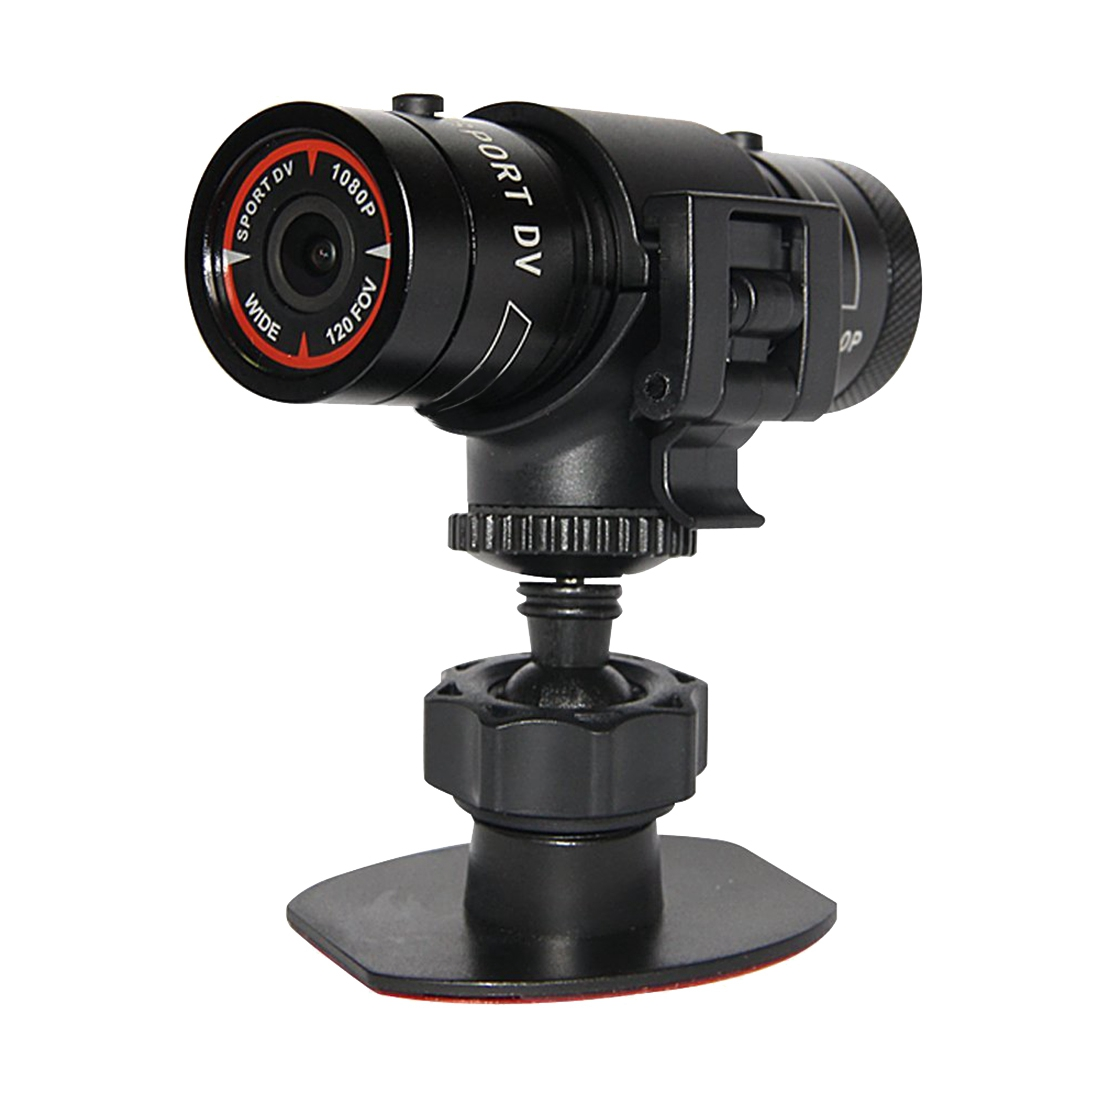 Wholesale Sport Camera Full HD 1080P Action Waterproof Video Recorder Helmet Bike DVR<br>